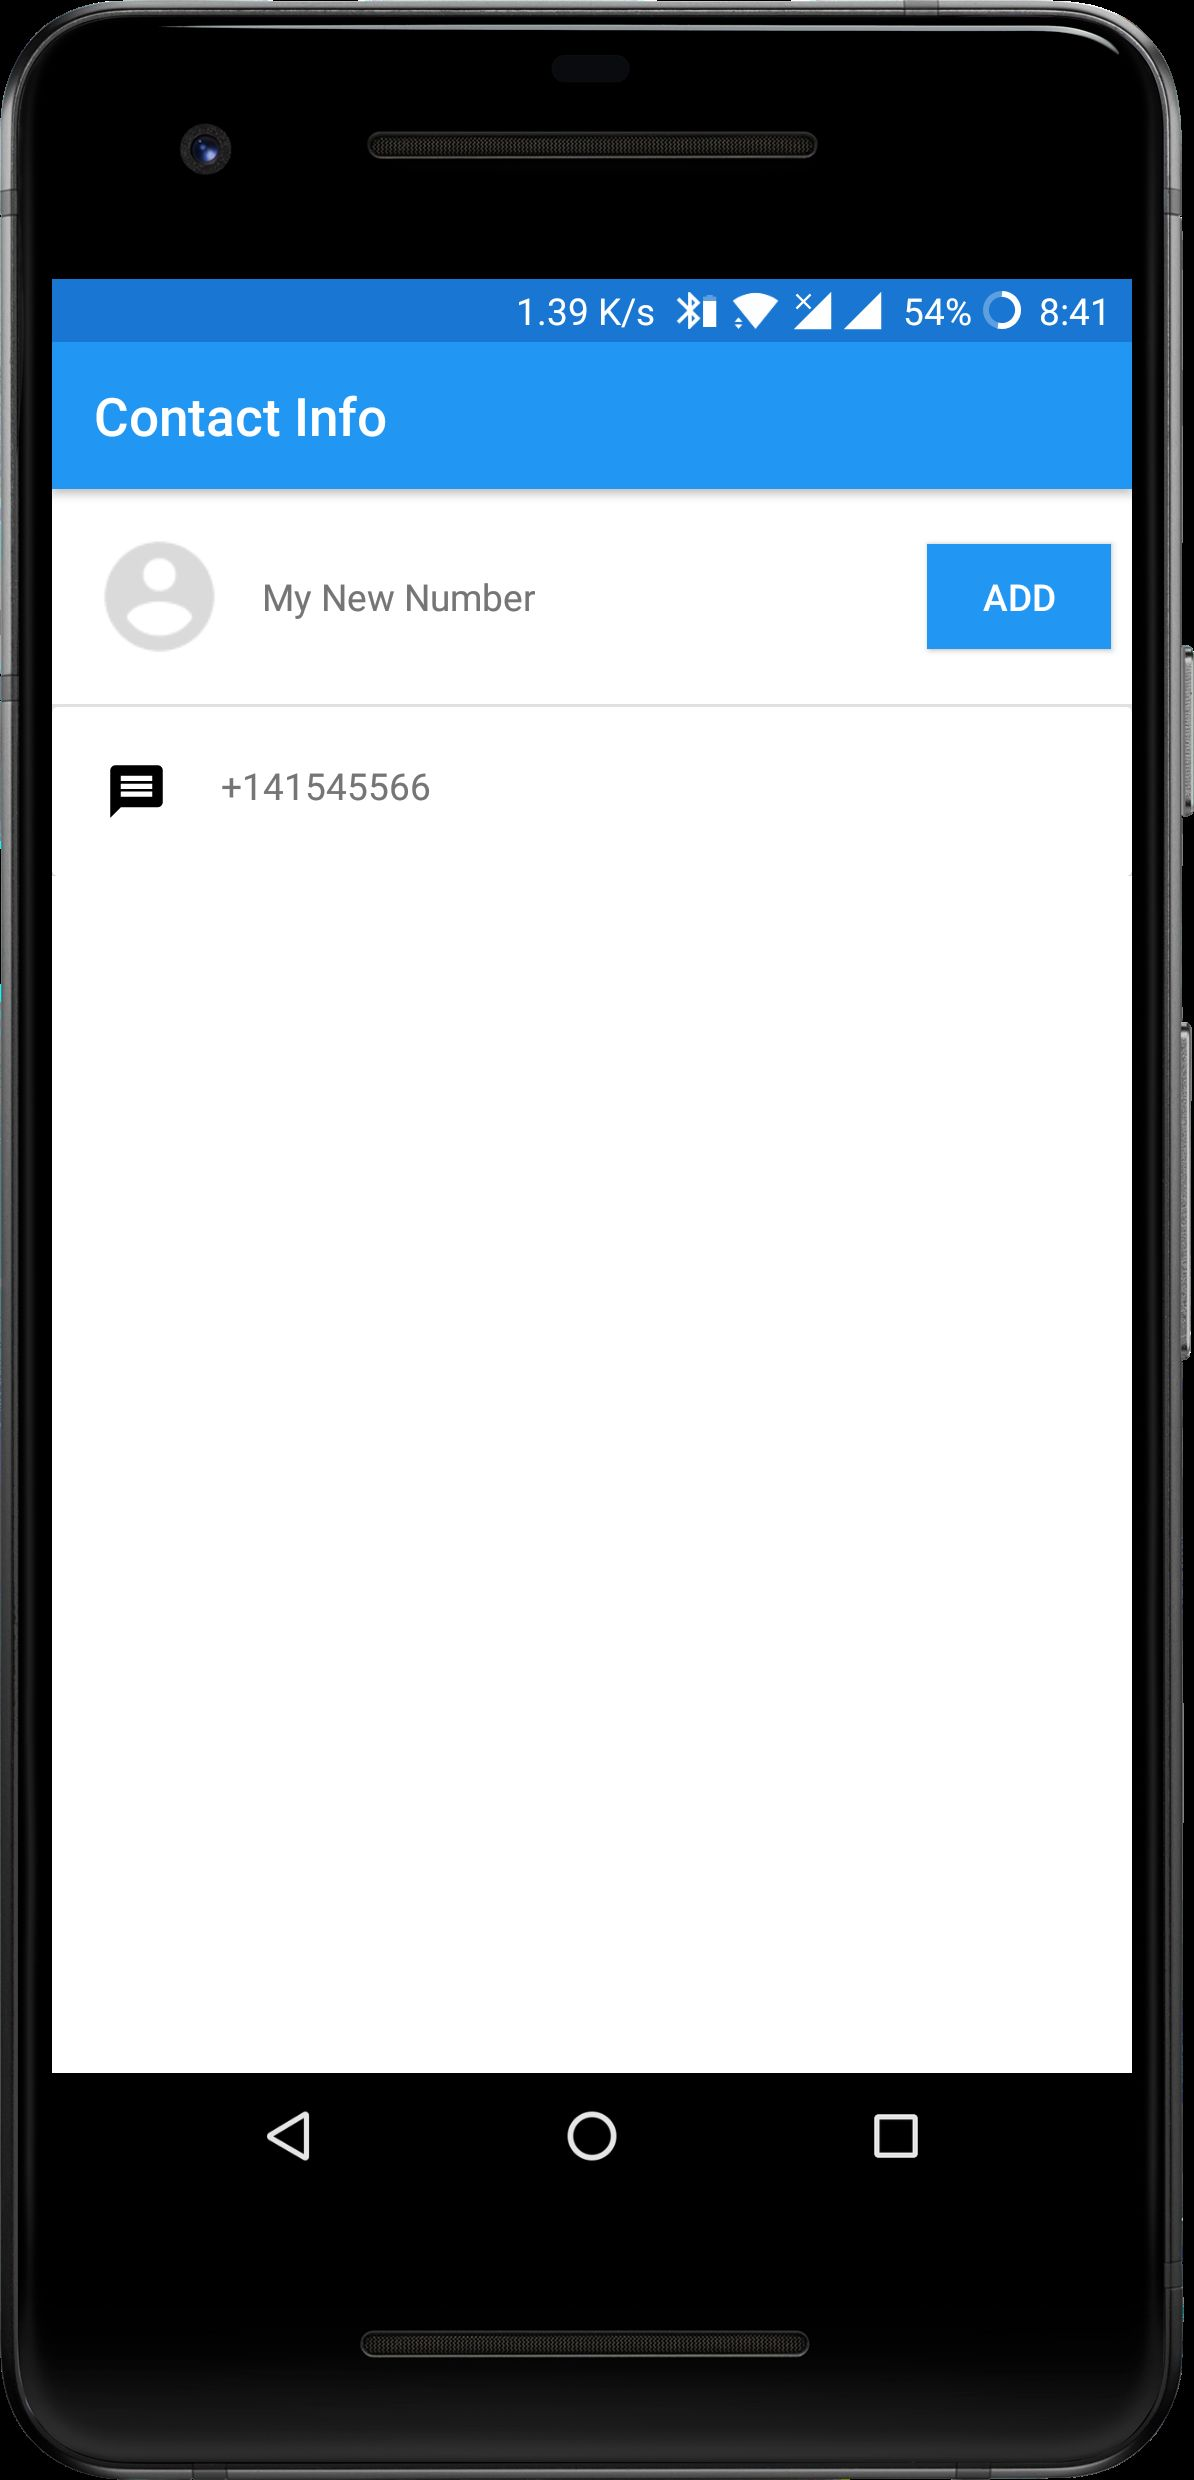 FireApp Chat - Firebase Android Source Code Screenshot 16